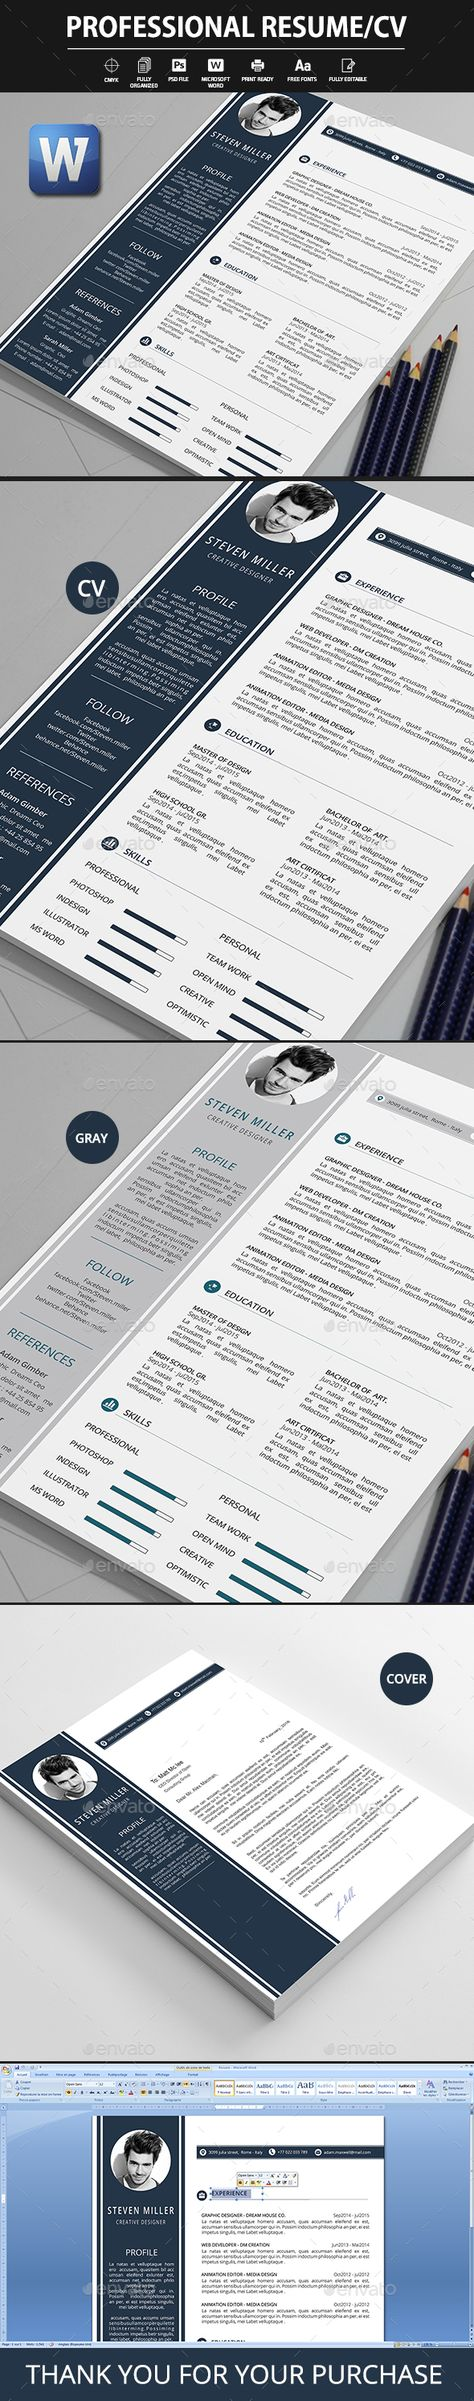 115 best Resumes Personal Branding images on